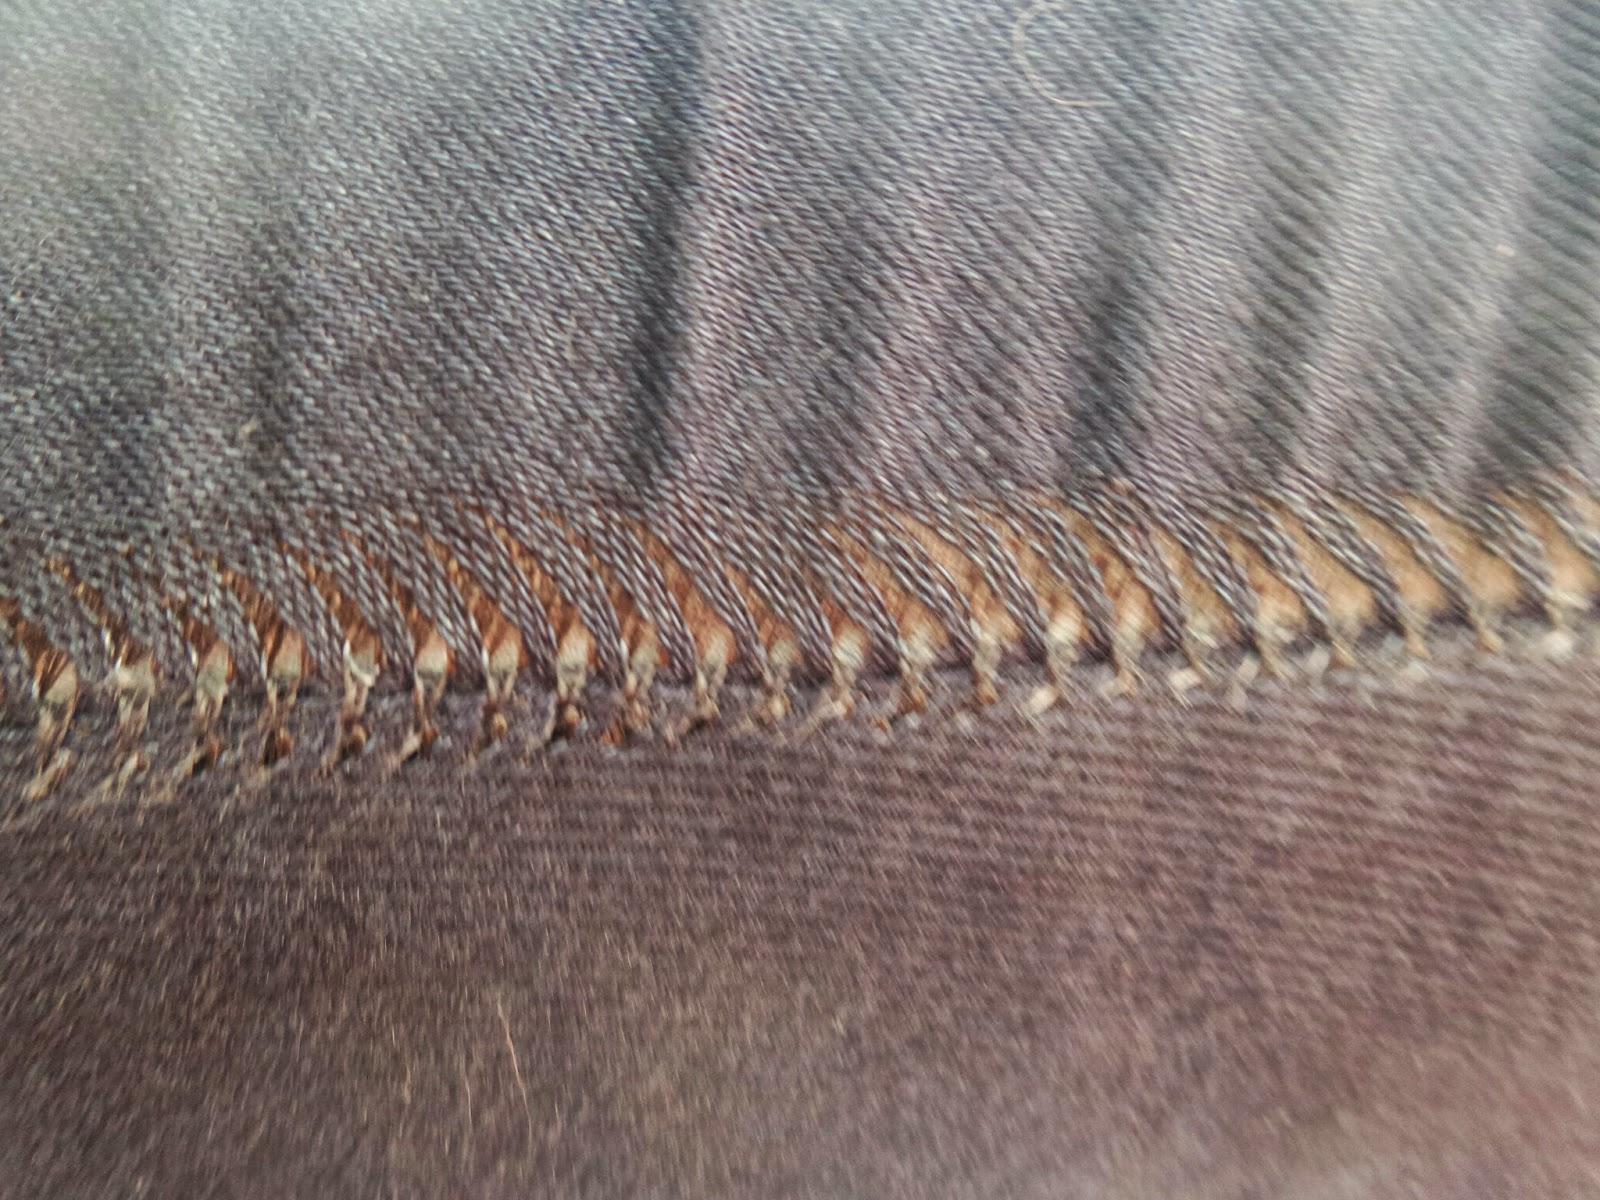 Pulling of the inside seam on PippaD's new jeans